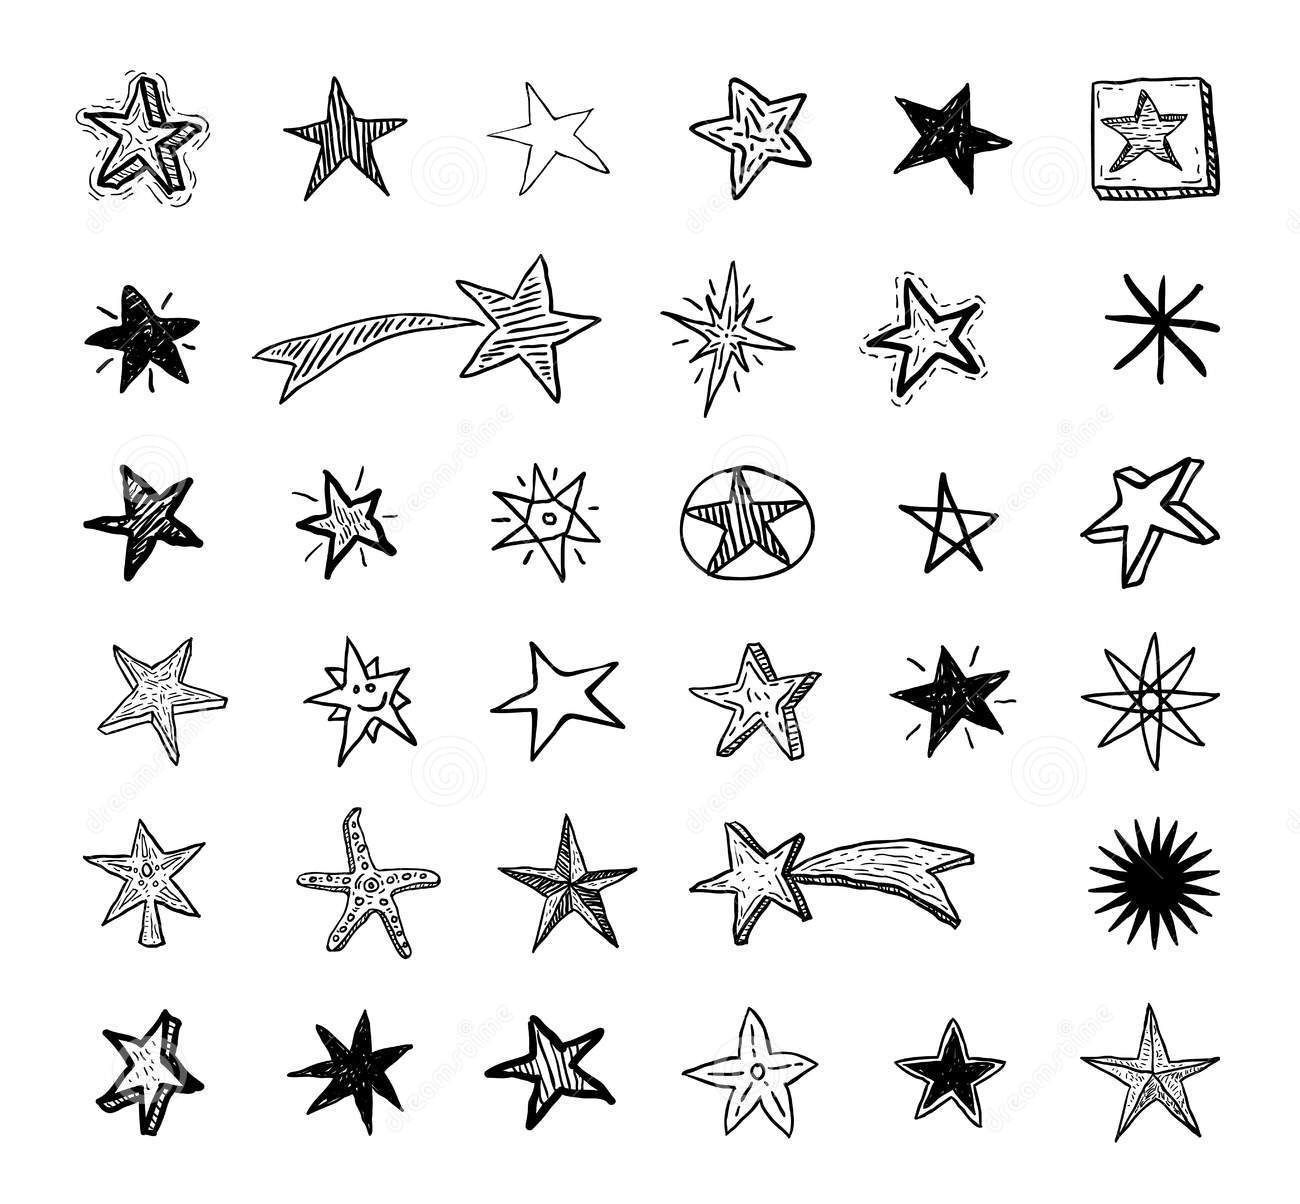 Stars Doodles Star Doodle Hand Drawn Vector Illustrations Star Illustration Choose from over a million free vectors, clipart graphics, vector art images, design templates, and illustrations created by artists worldwide! stars doodles star doodle hand drawn